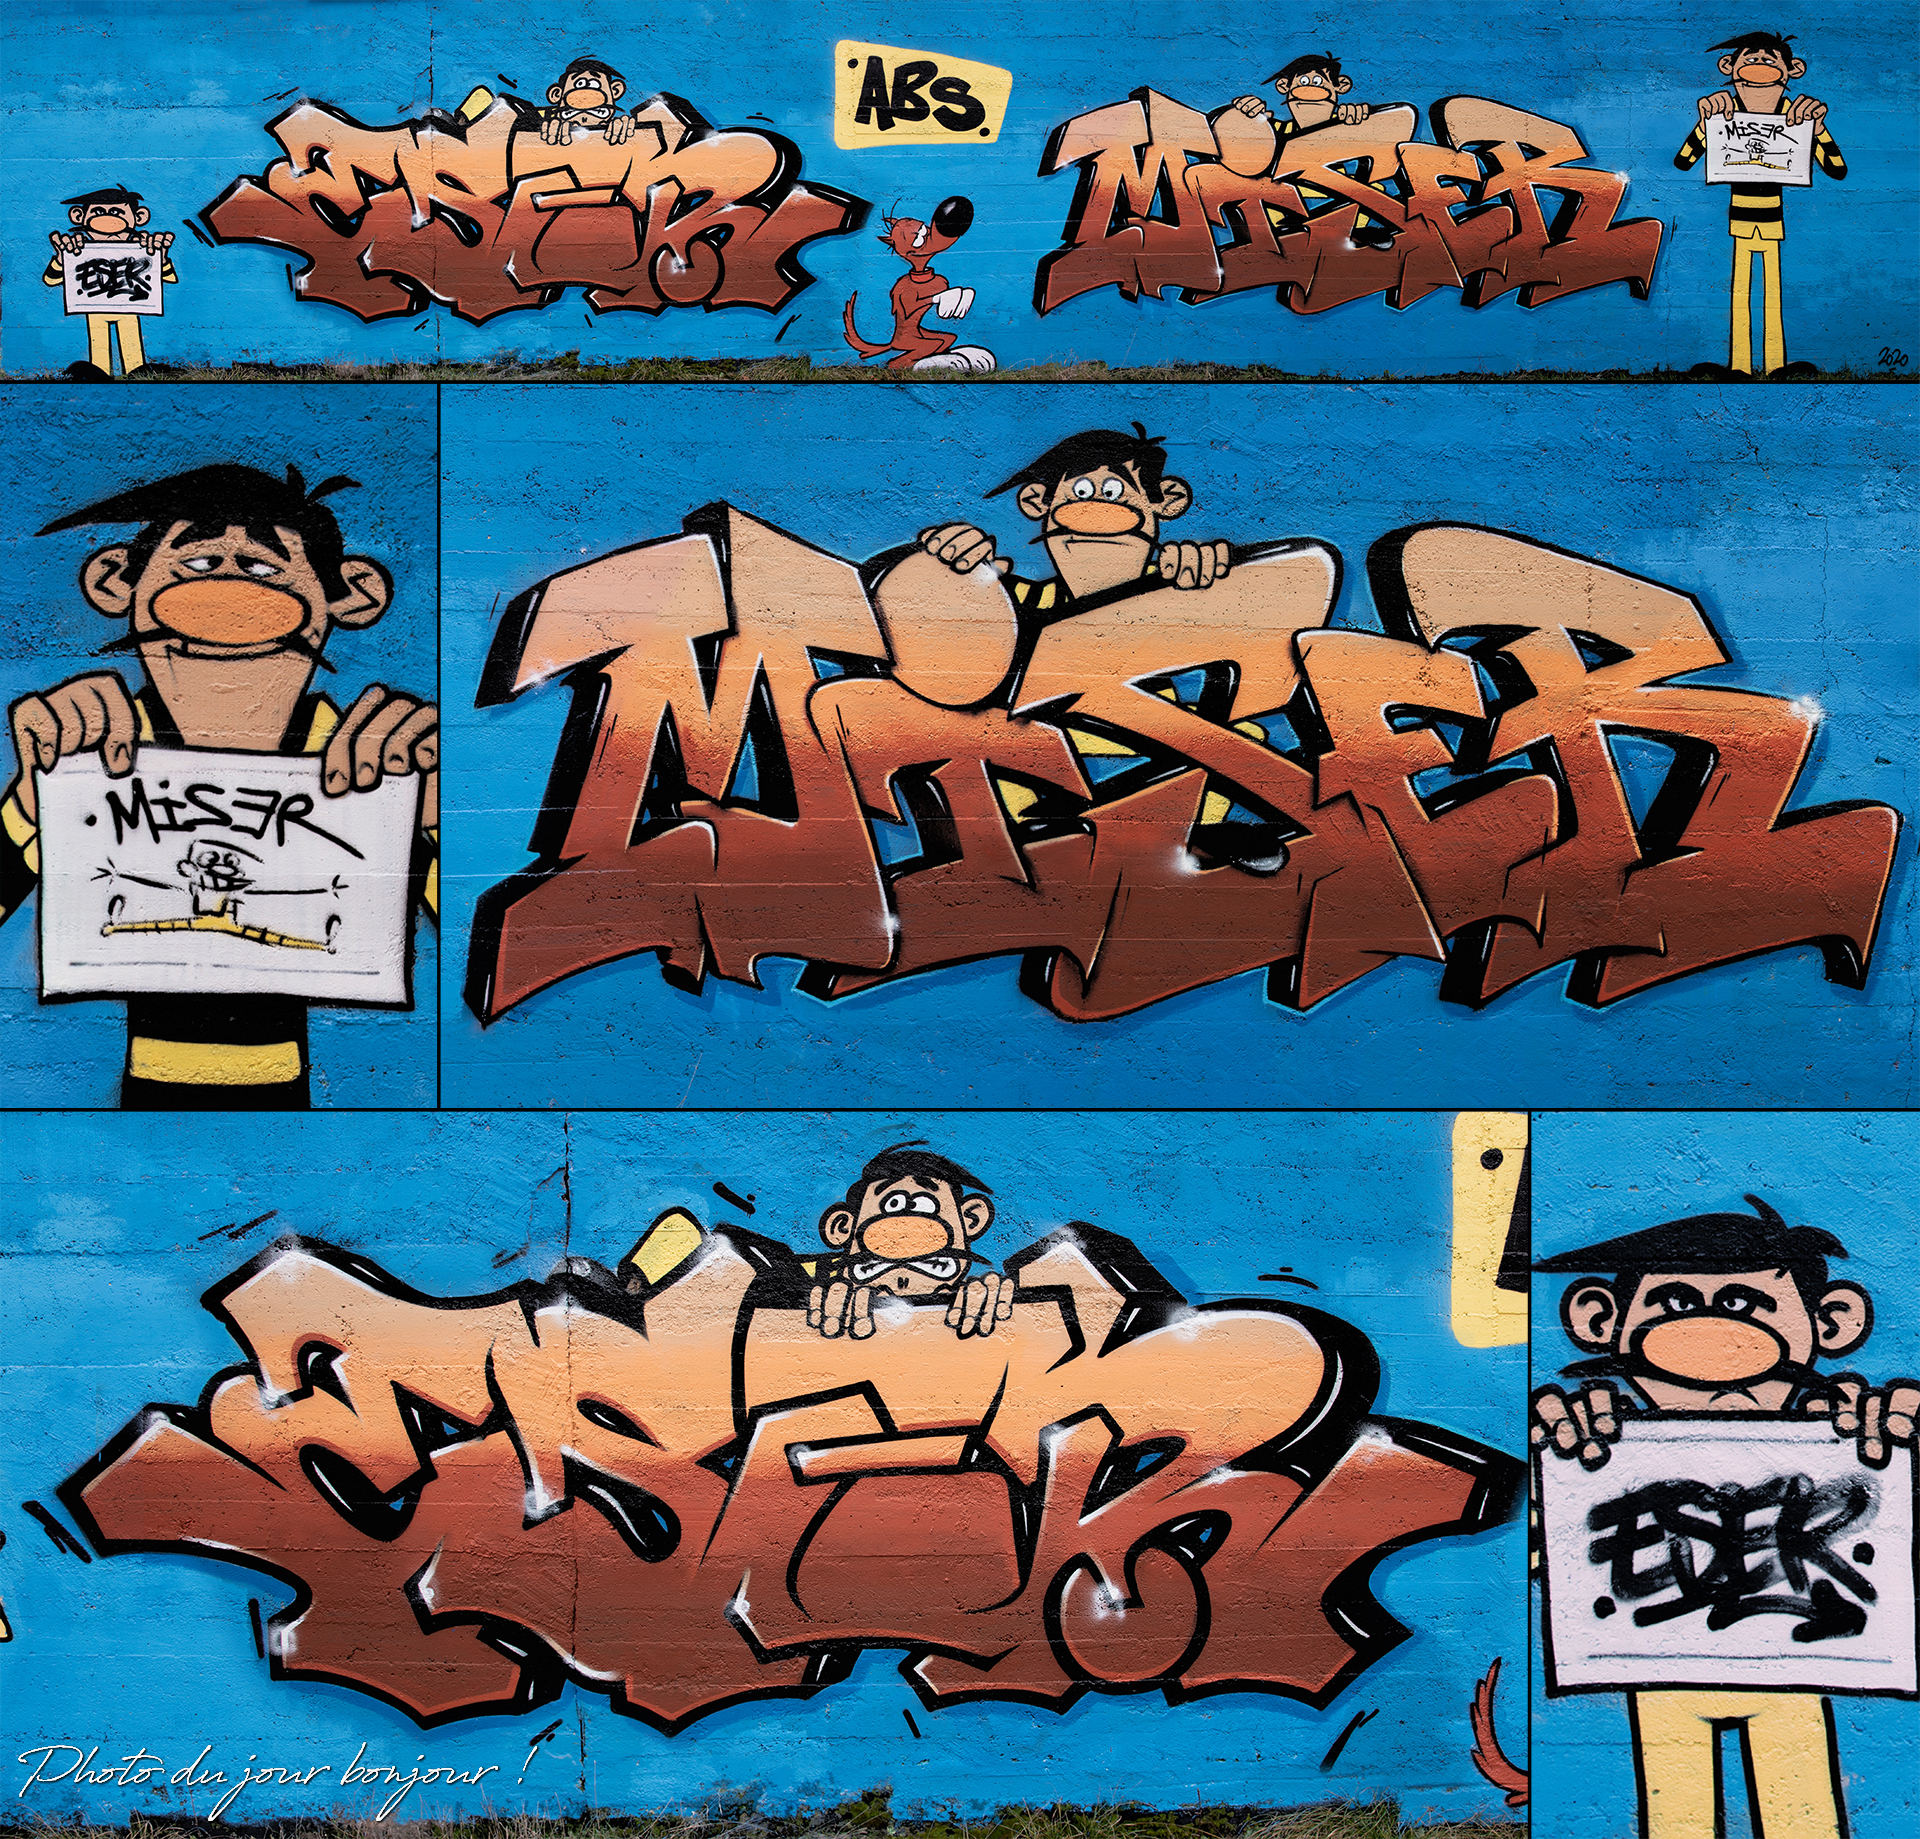 Graff by Miser & Eser